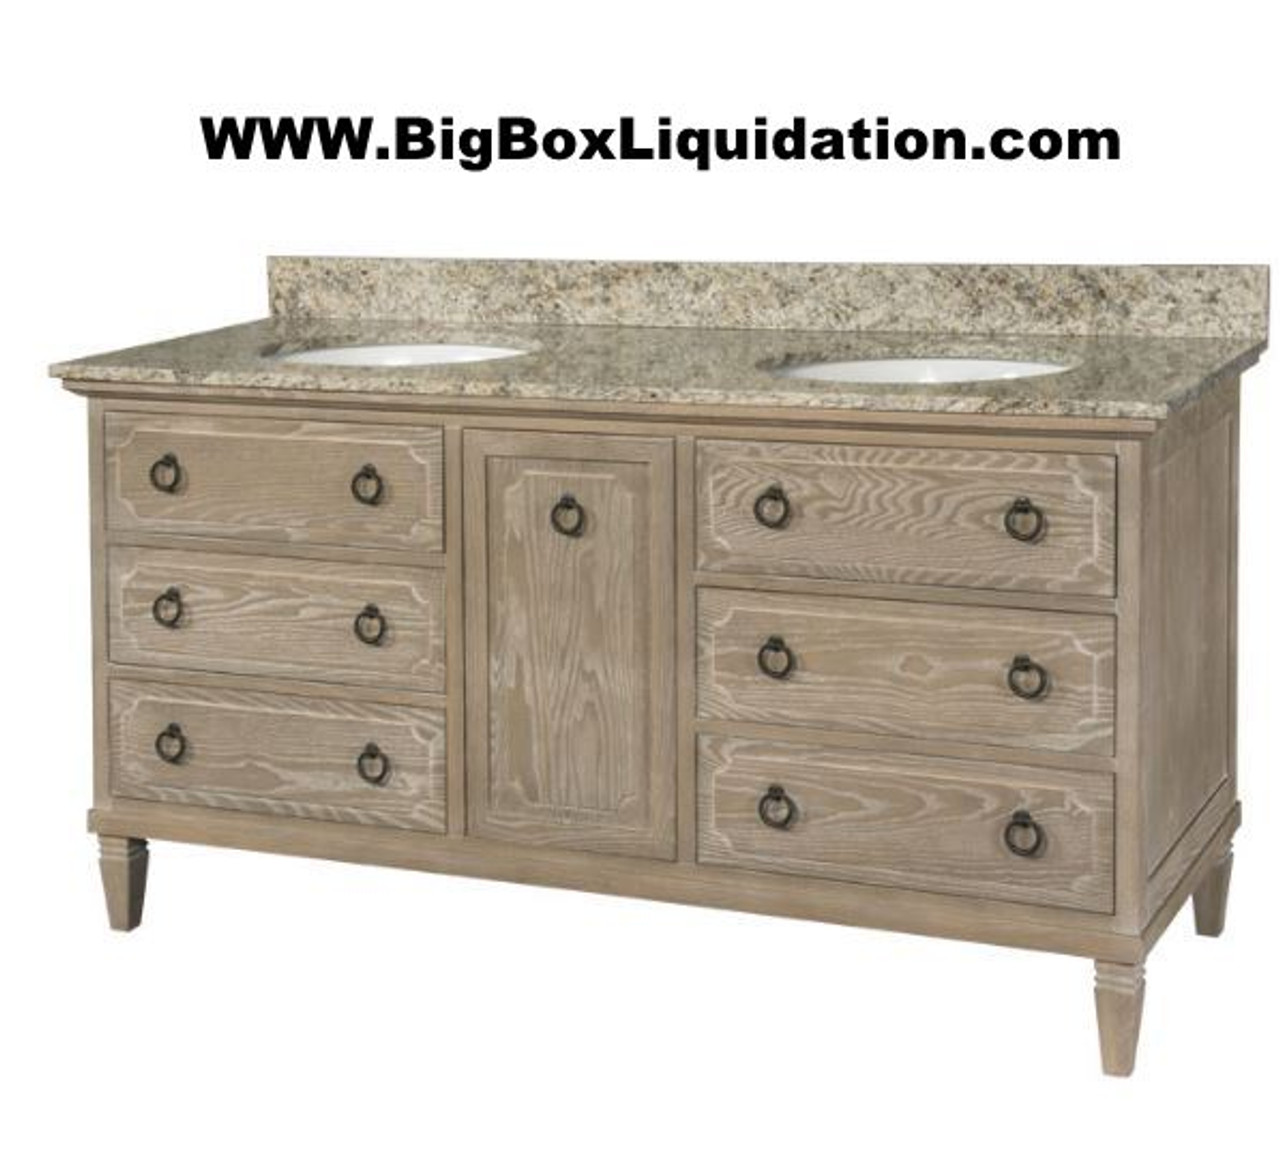 Solid Wood Ann Stained Weathered Gray 60 In X 22 In All Drawers Slow Close Fully Assembled Bath Vanity Cabinet Only Big Box Liquidation Llc